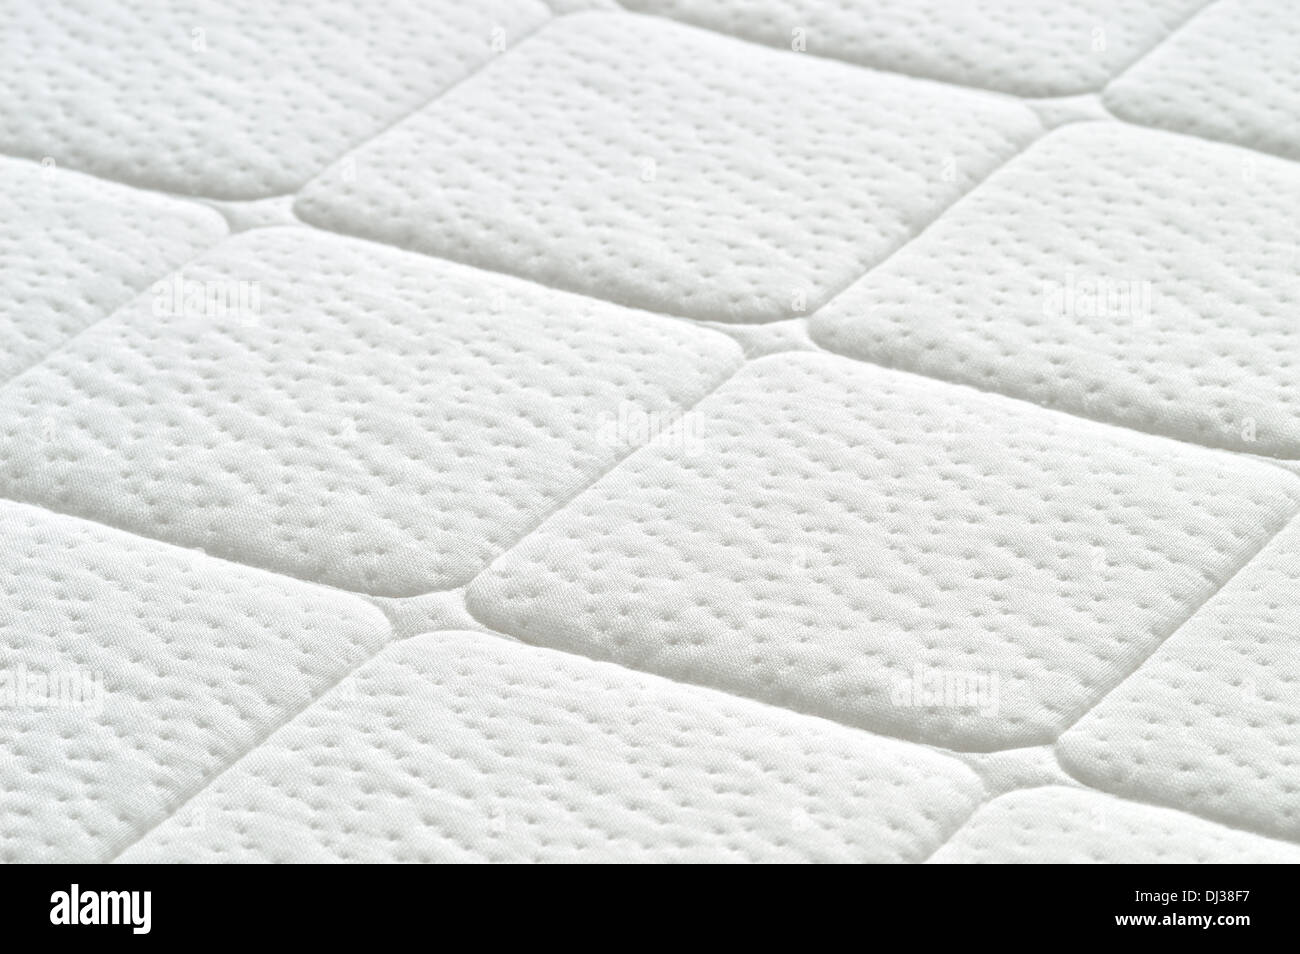 mattress texture. Close-up Of White Mattress Texture. Patter Quilted Material. Comfortable Mattress. Copy Space Texture